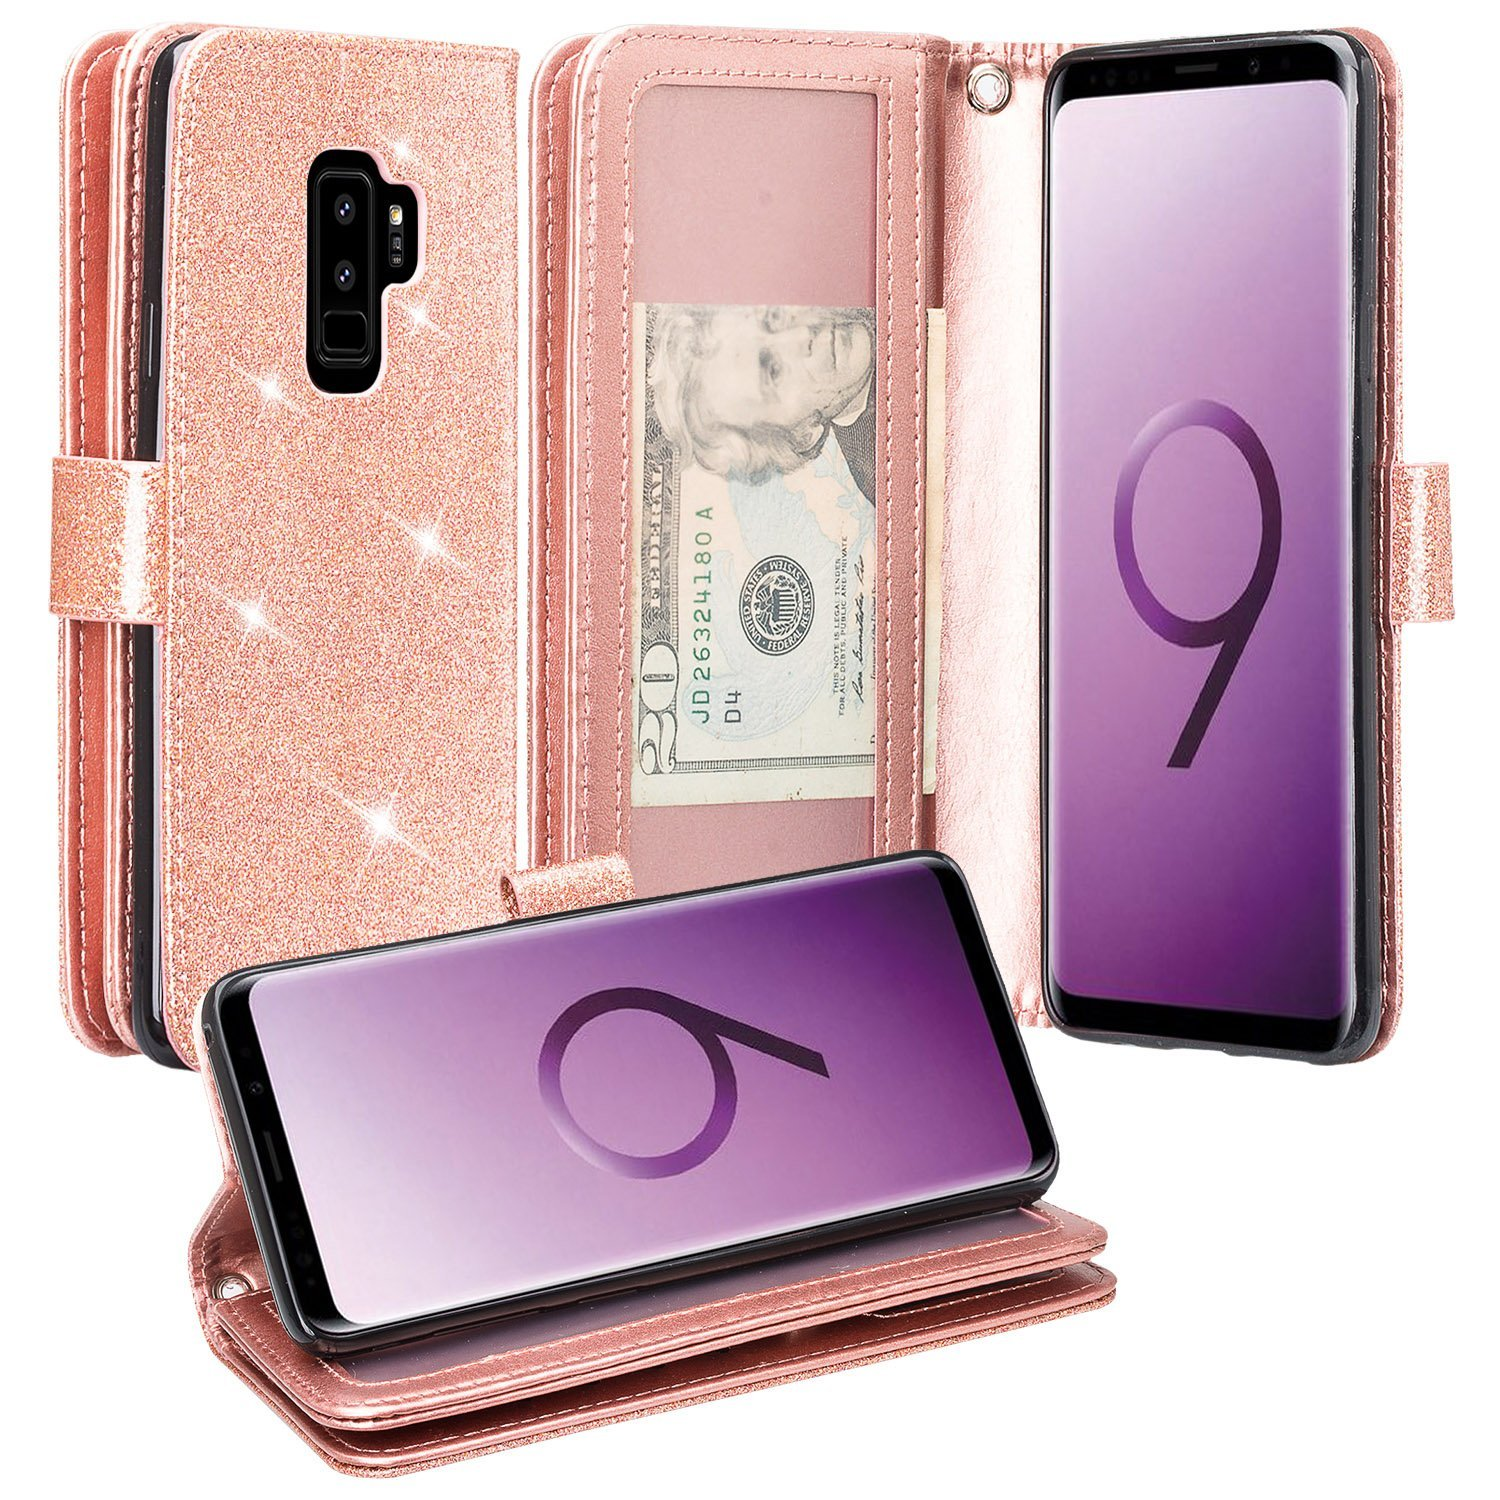 Galaxy S9 Case, Samsung Galaxy S9 Phone Cases Glitter Faux Leather Flip Credit Card Holder Wrist Strap Shockproof Protective Wallet Case Clutch Galaxy S9 (Rose Gold)